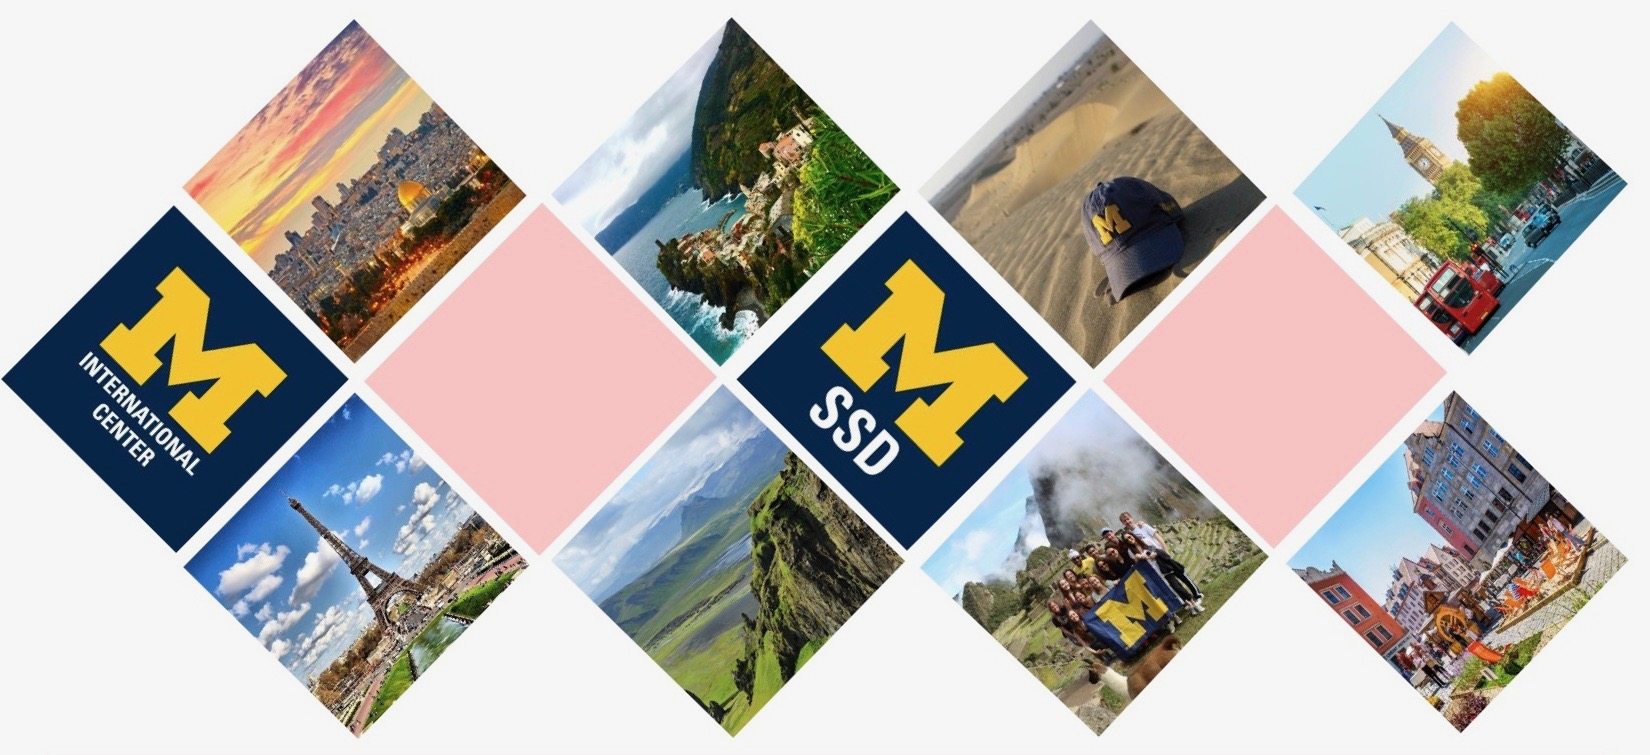 photos of places around the world intermixed with the U-M SSD logo and International Center